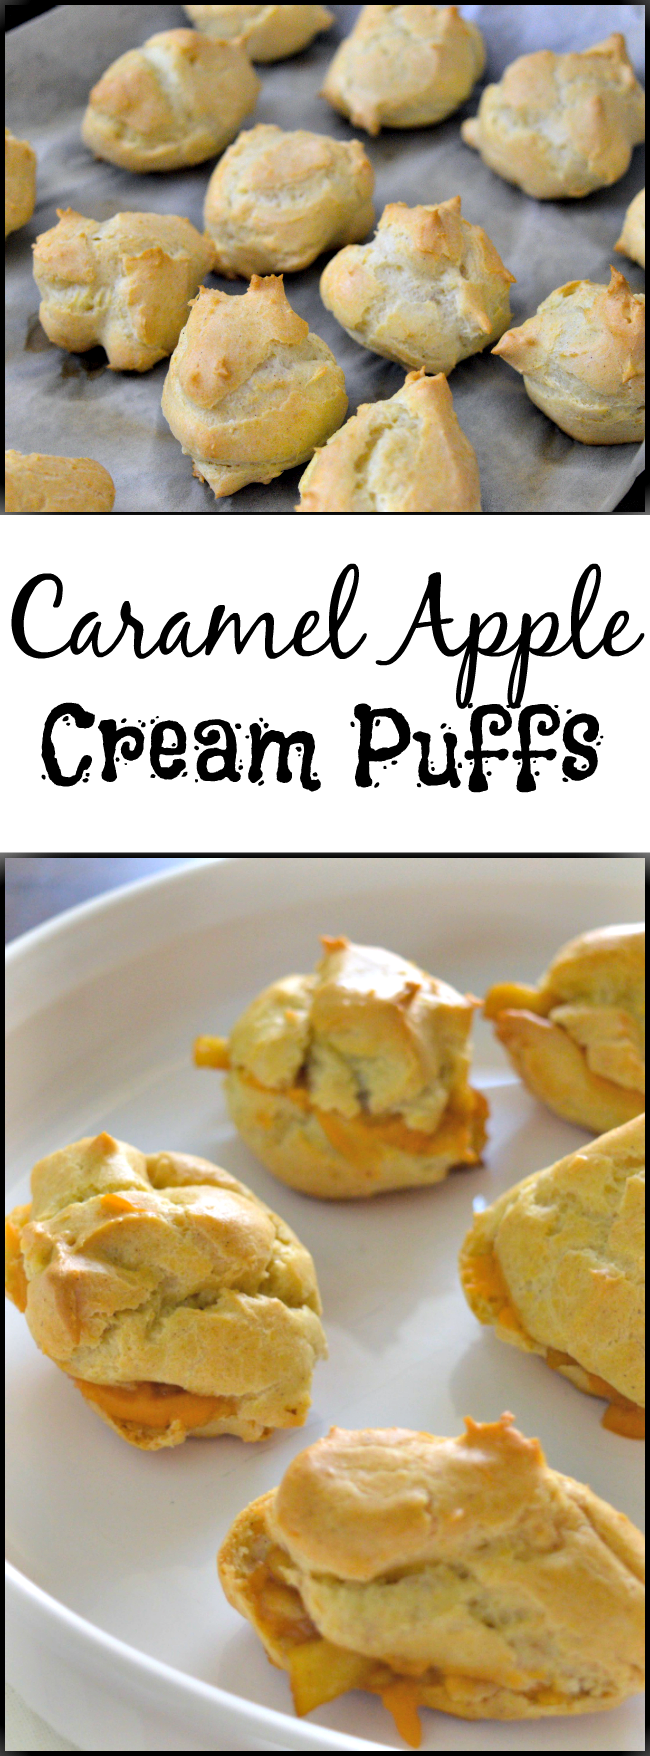 Apples are still in season and we always have at least one apple dessert at our Thanksgiving dinner like this Caramel Apple Cream Puffs recipe.